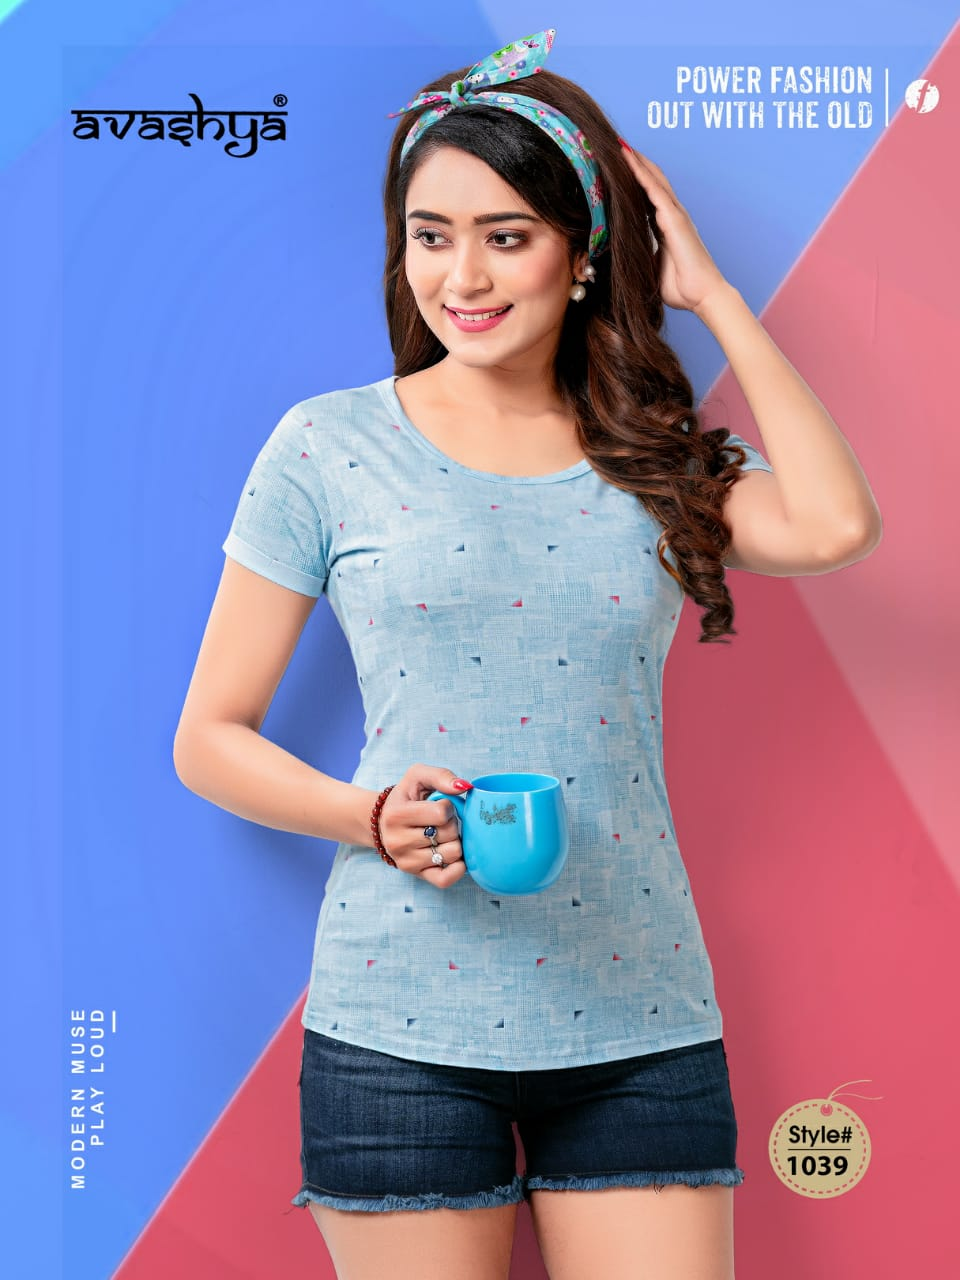 Avashya Retro Vol 54 Half Sleeves T Shirt Wholesale Catalog 6 Pcs 4 1 - Avashya Retro Vol 54 Half Sleeves T-Shirt Wholesale Catalog 6 Pcs